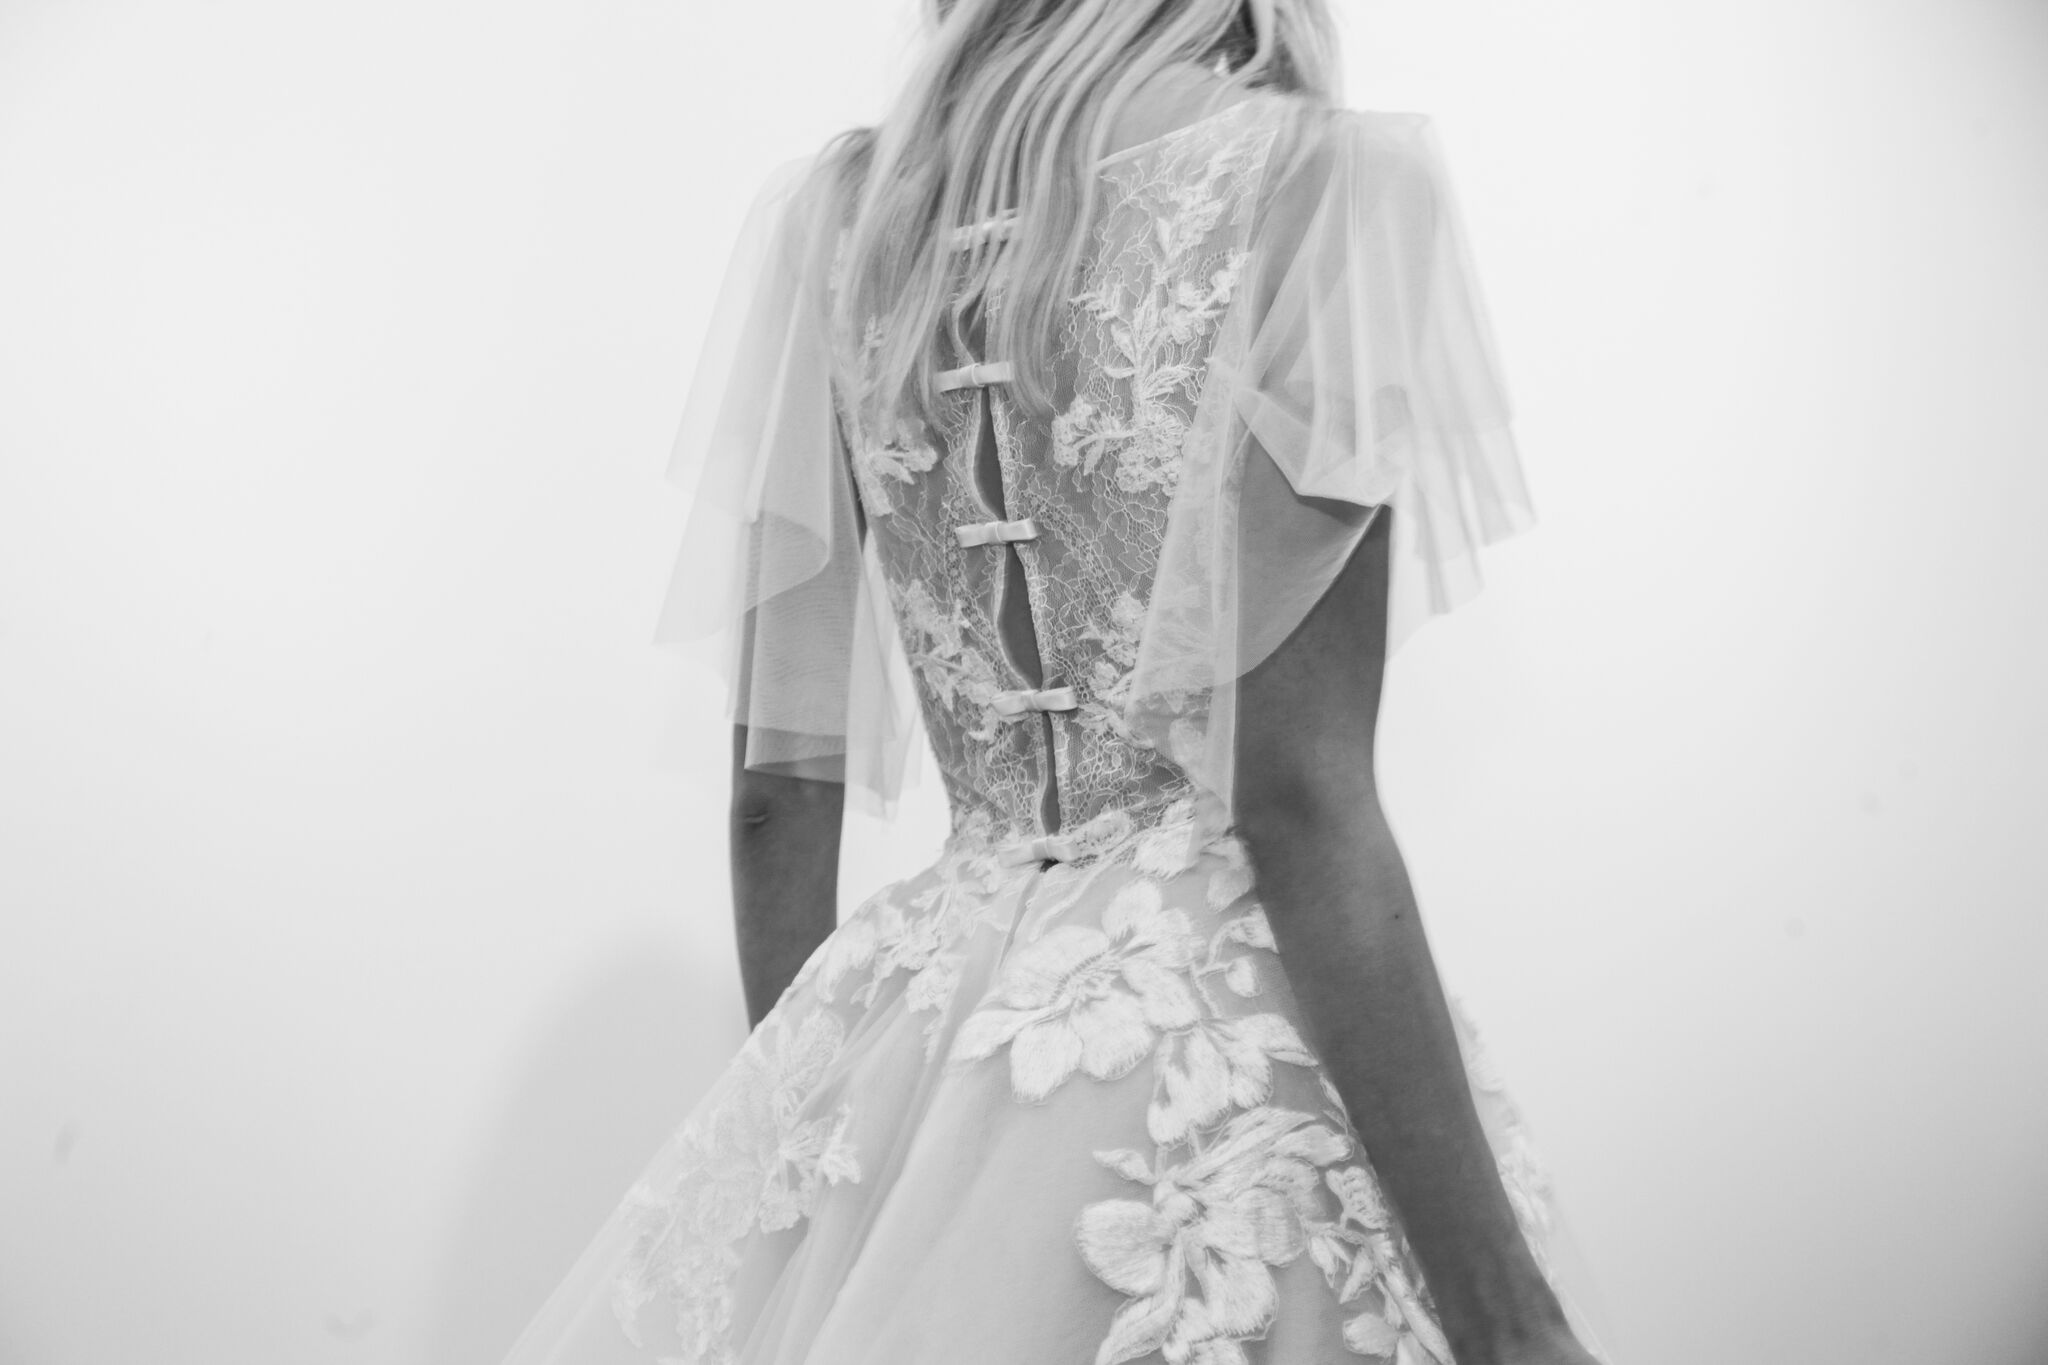 Bliss Monique Lhuilier shows a feminine wedding dress look with tailored bows and a sheer petal sleeve.